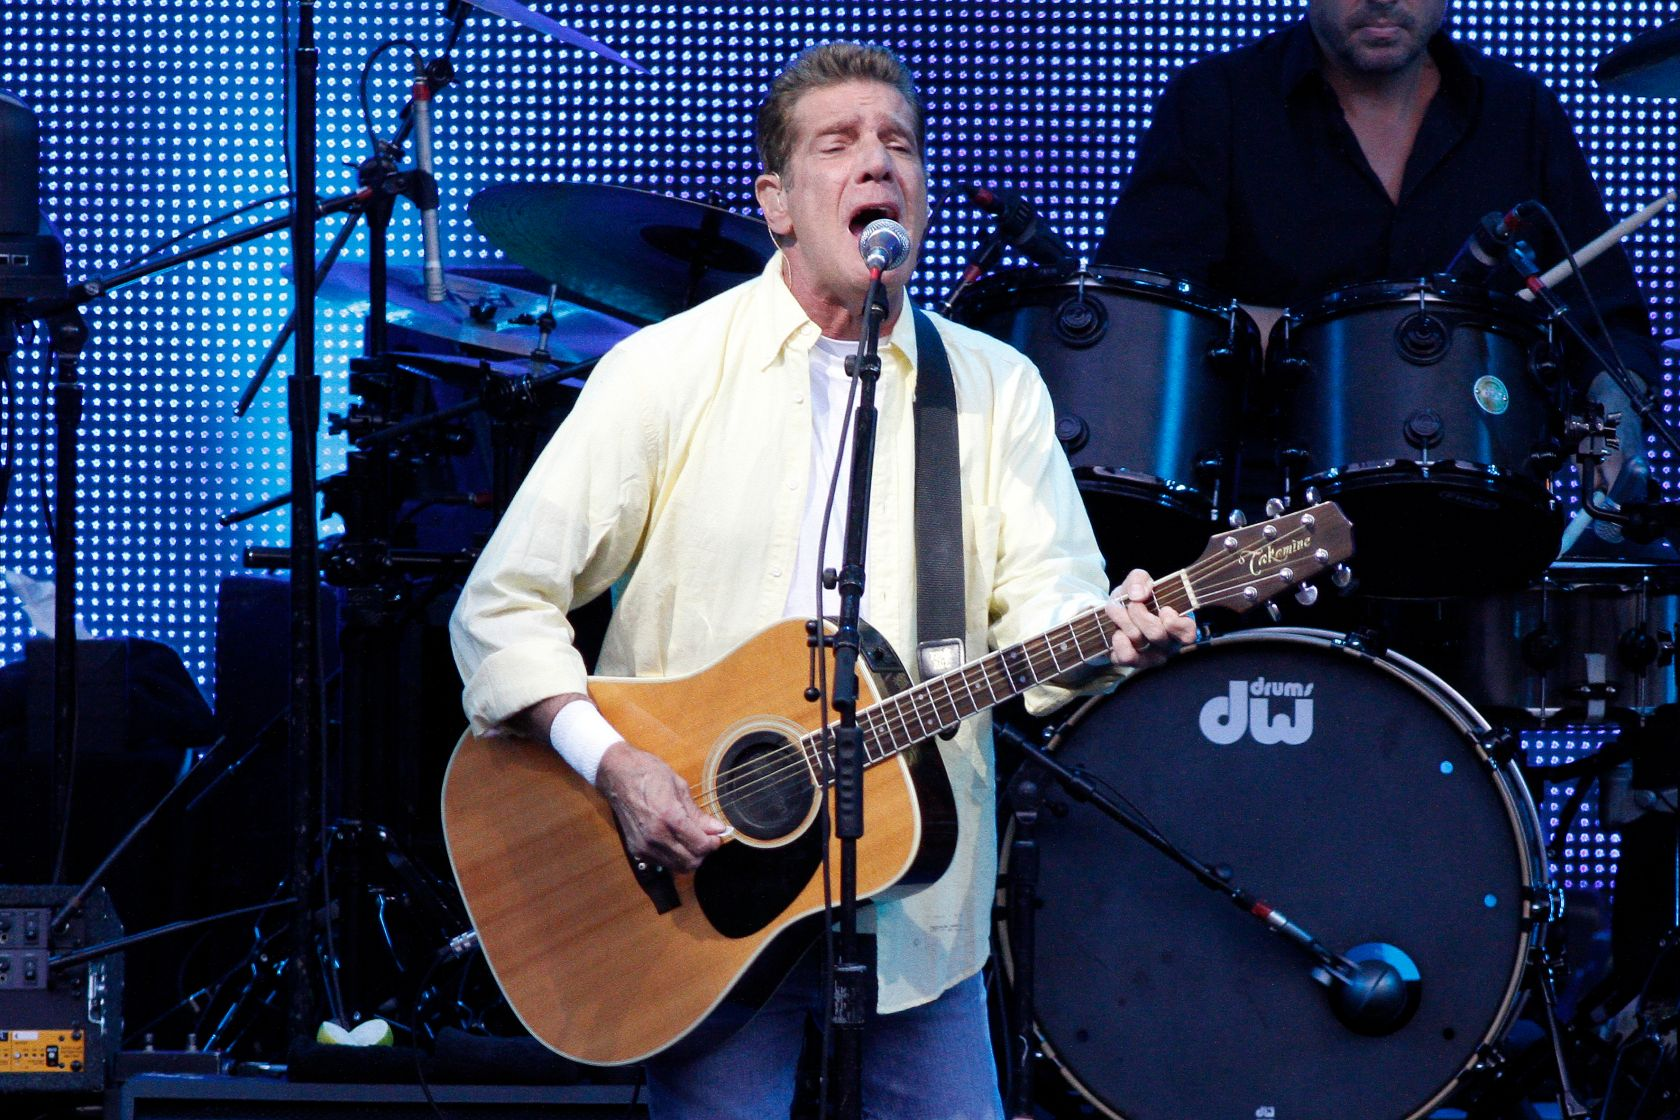 Eagles - Band, rock music, USA - Singer and Guitarist Glenn Frey performing in Berlin, Germany, Waldbuehne